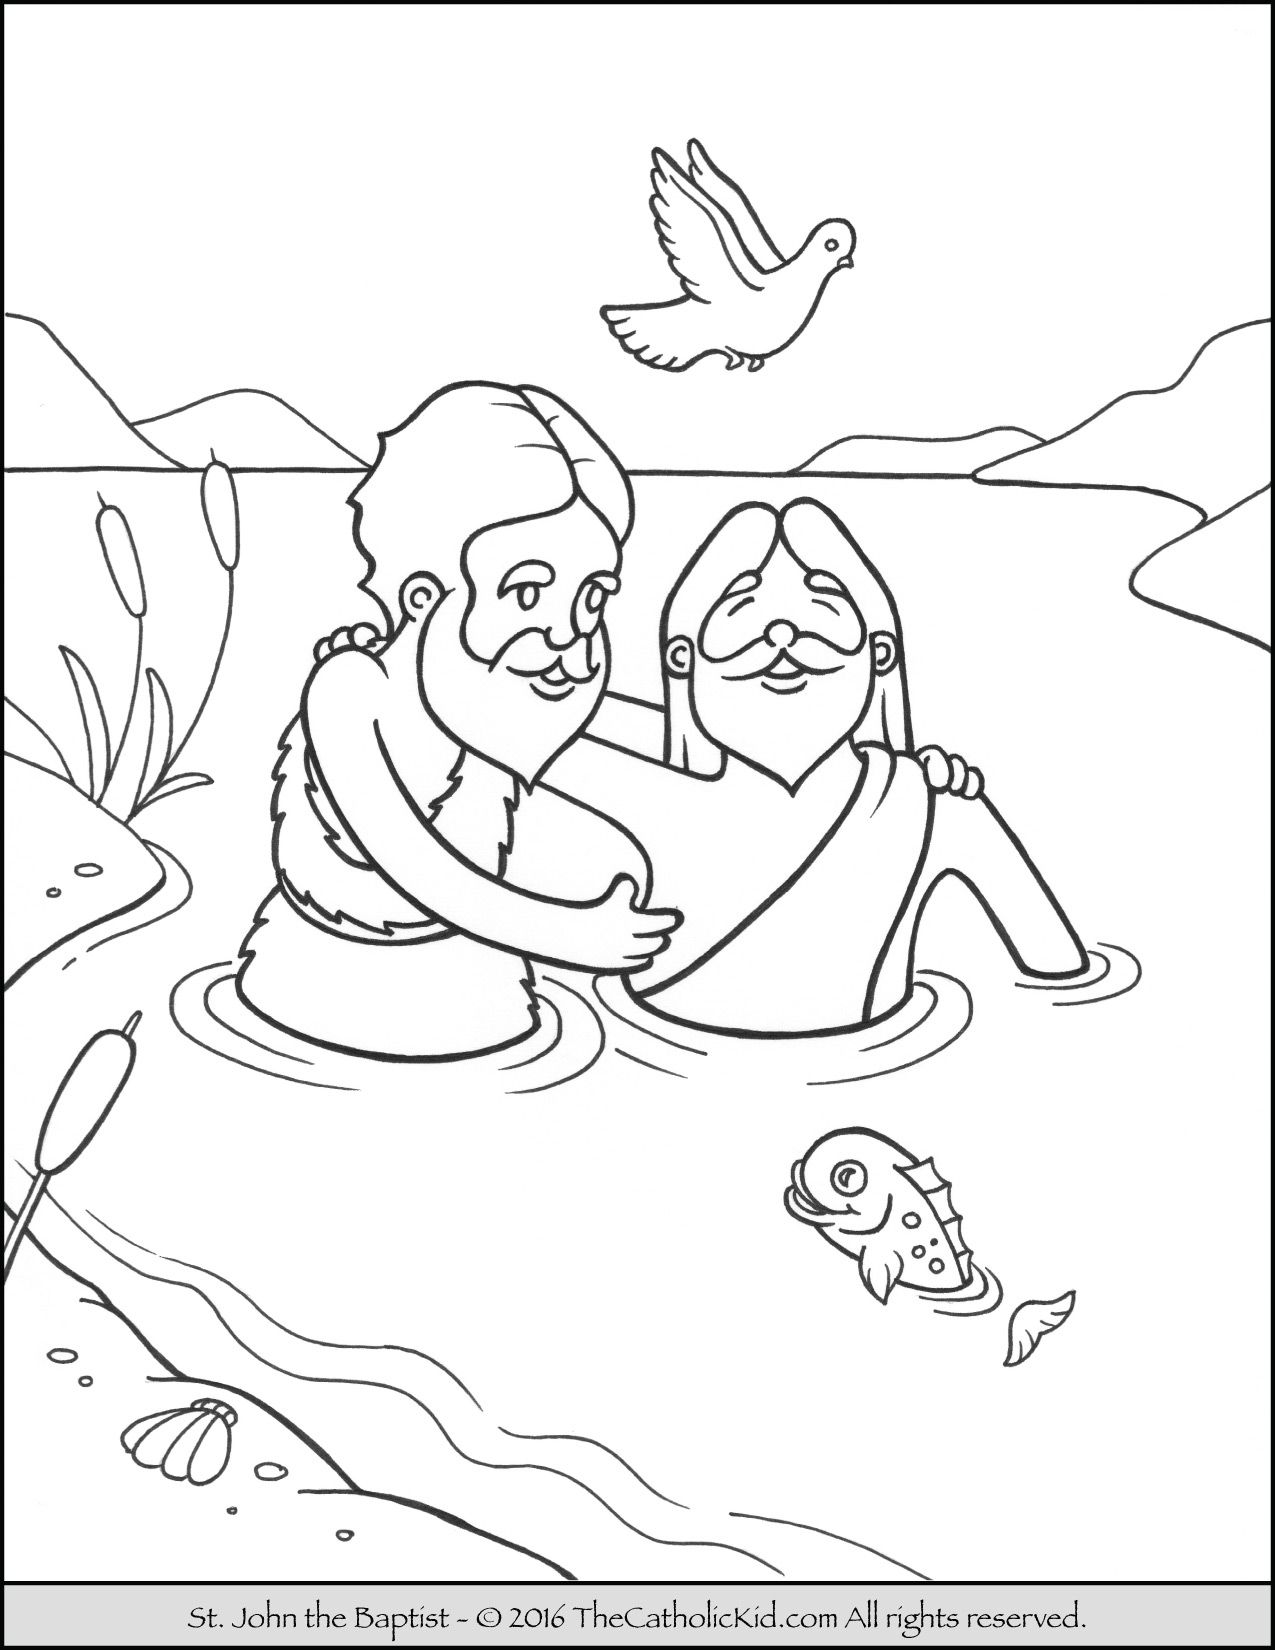 Coloring pages for john 9 - Saint John The Baptist Jordan River Coloring Page Cartoon